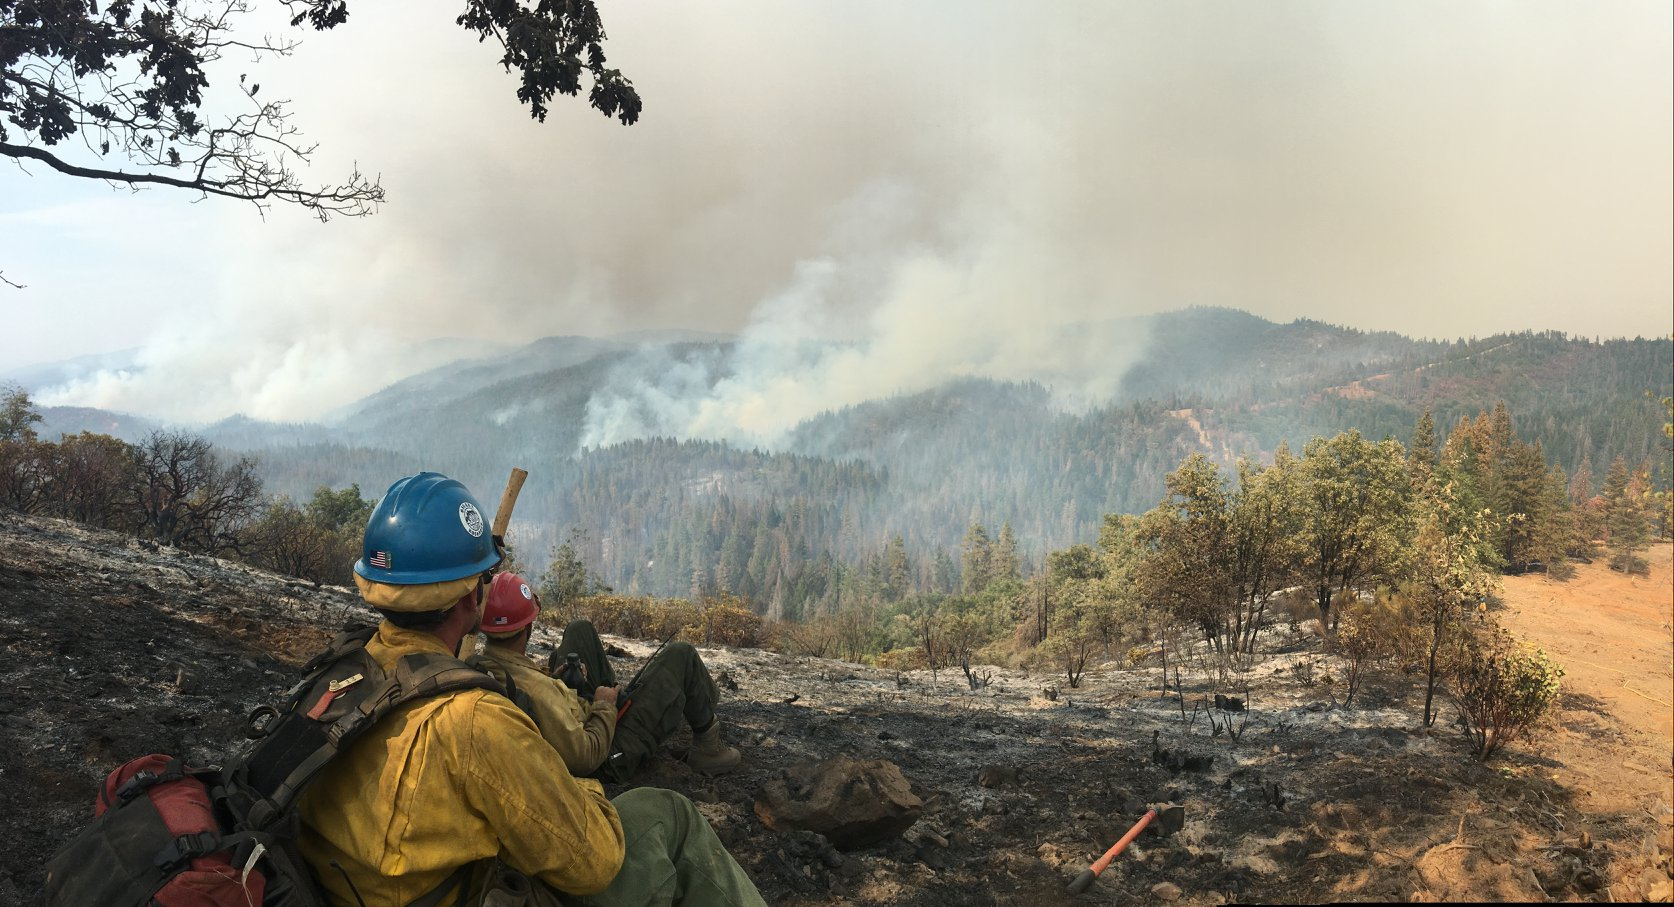 The Ferguson Fire which started on July 13 is officially out, according to the United States Forest Service.